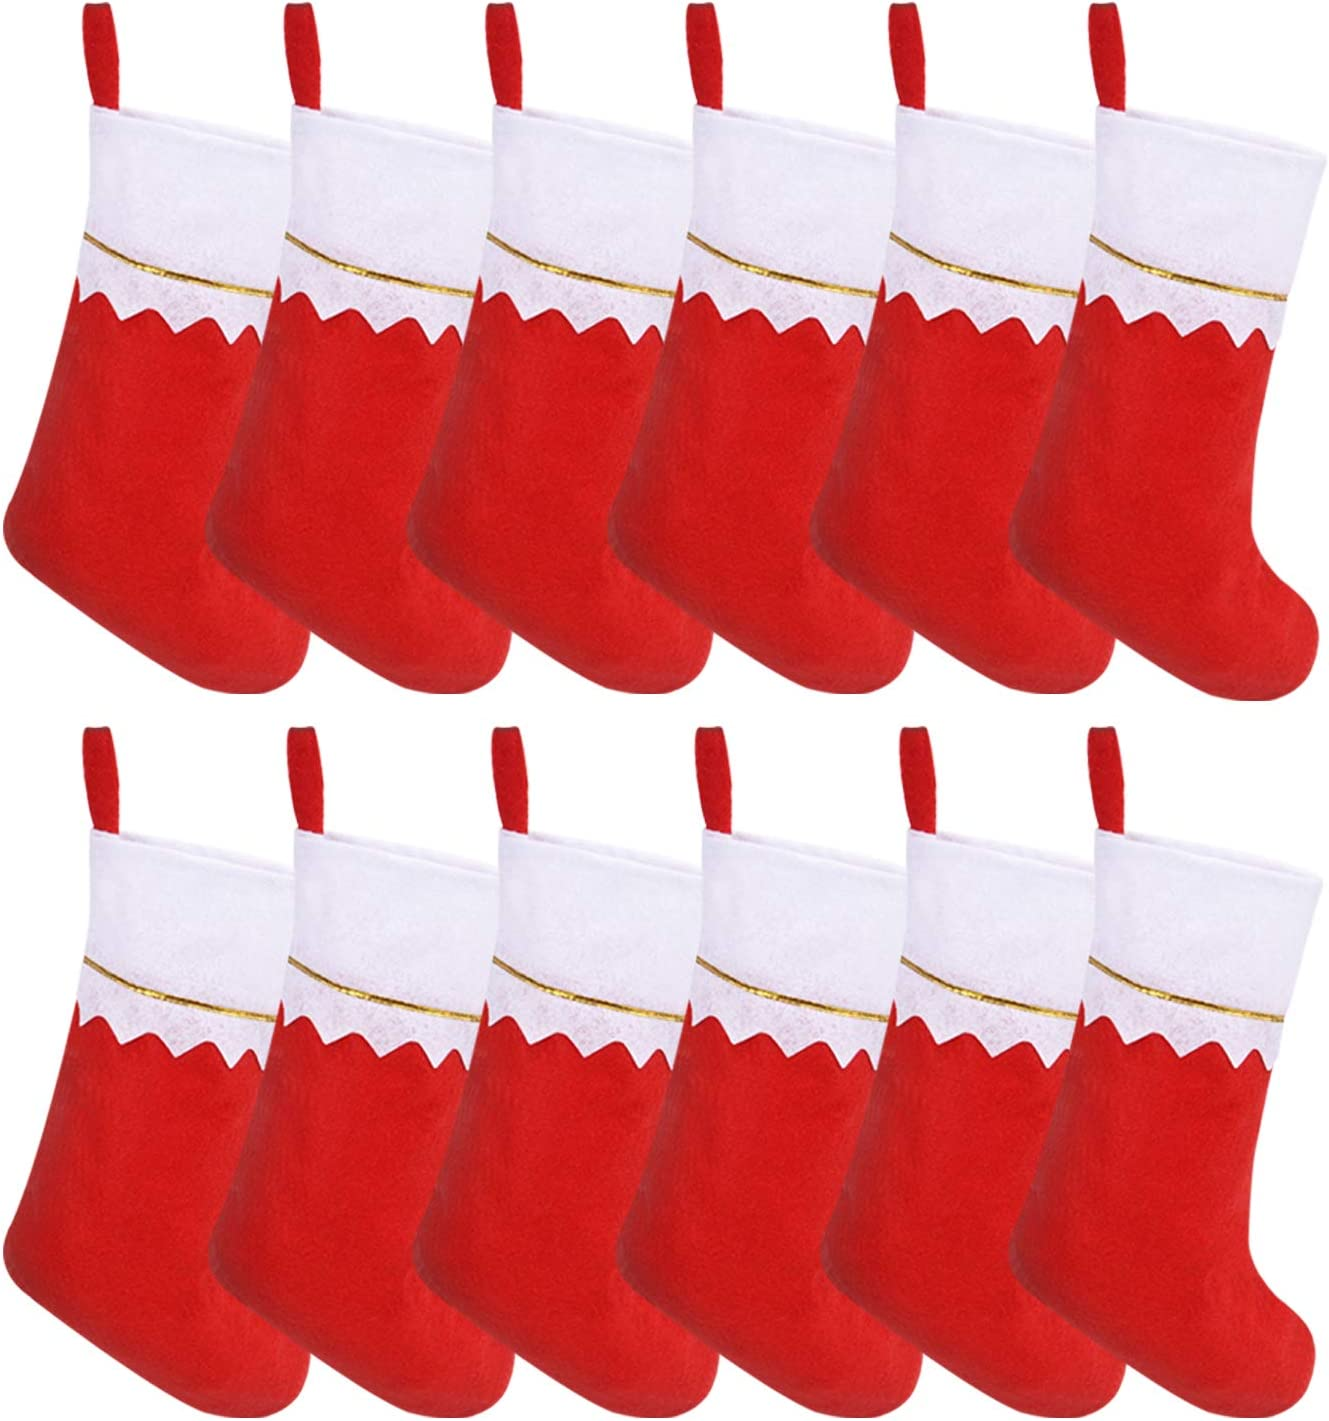 Livder 13 Inches Red Felt Christmas Stockings Fireplace Hanging Stocking Decoration Supplies, Pack of 12